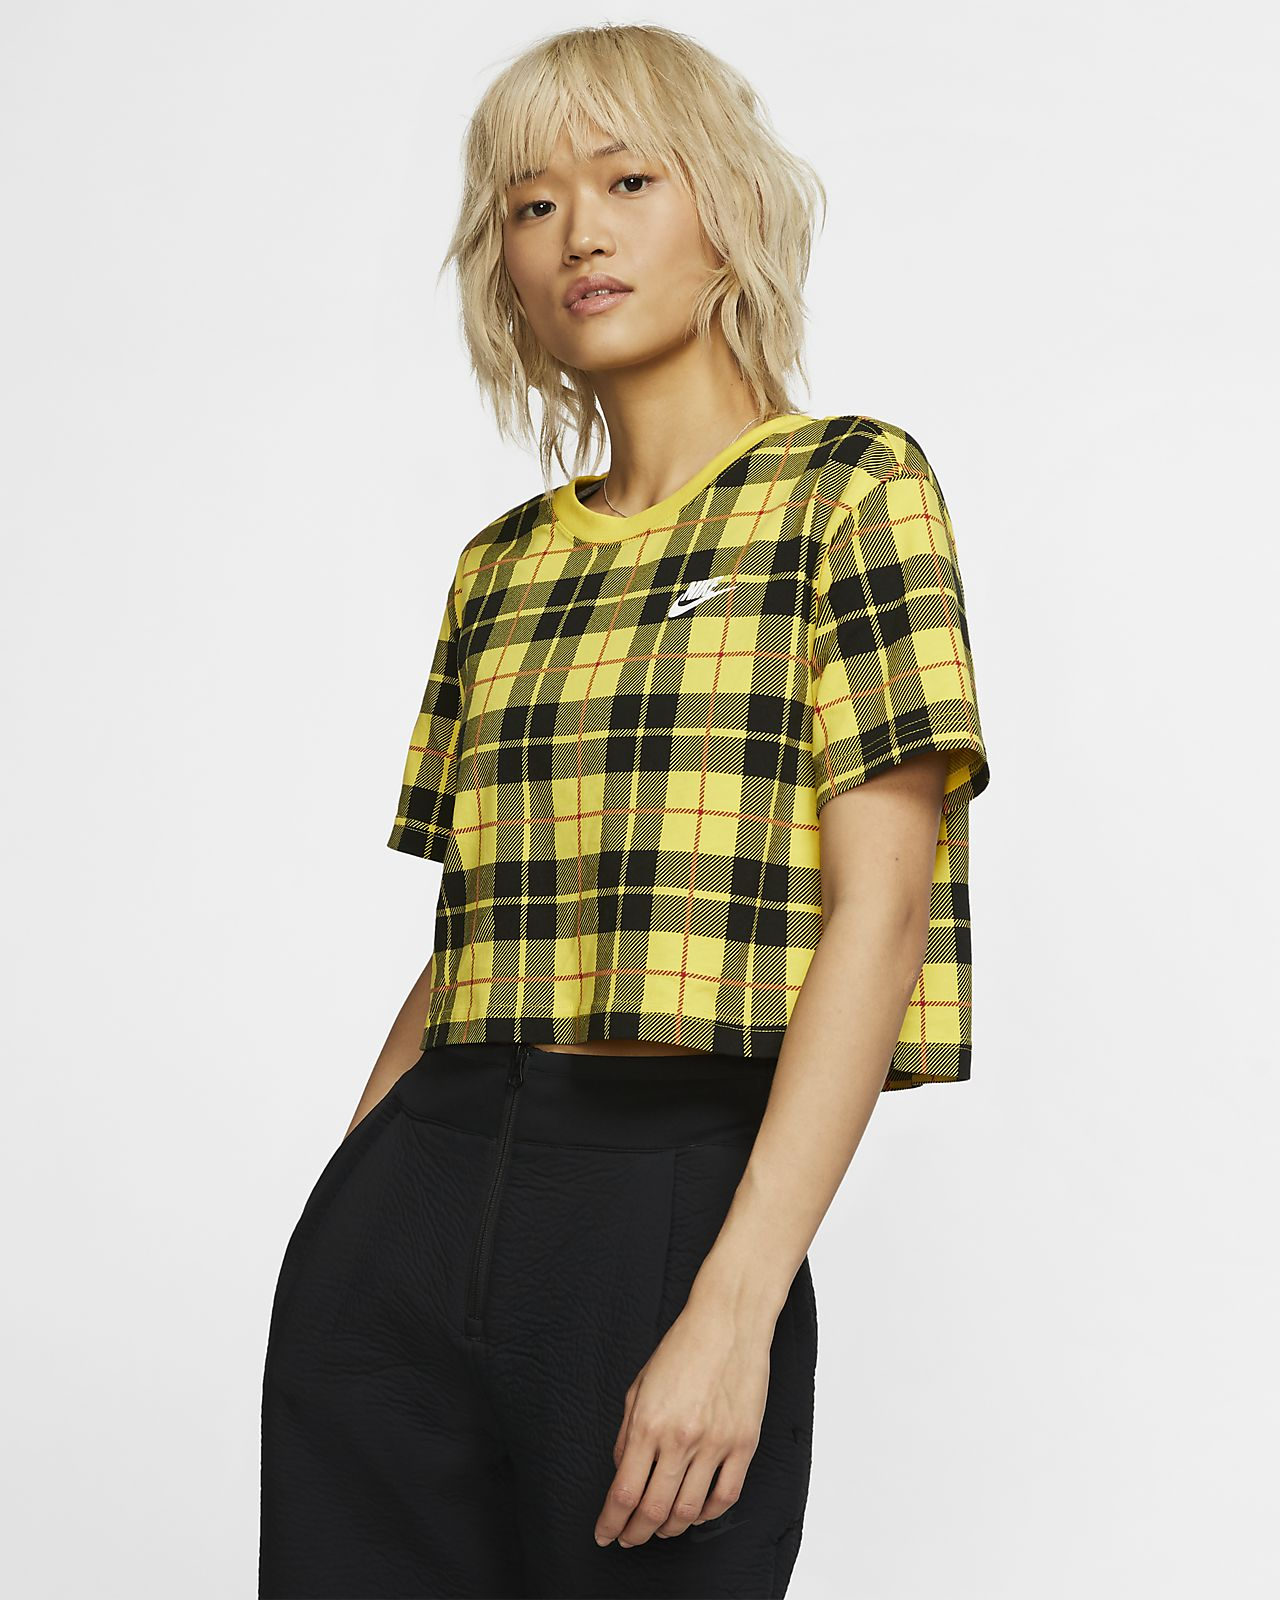 Nike Sportswear NSW Women's Cropped Checked T-Shirt